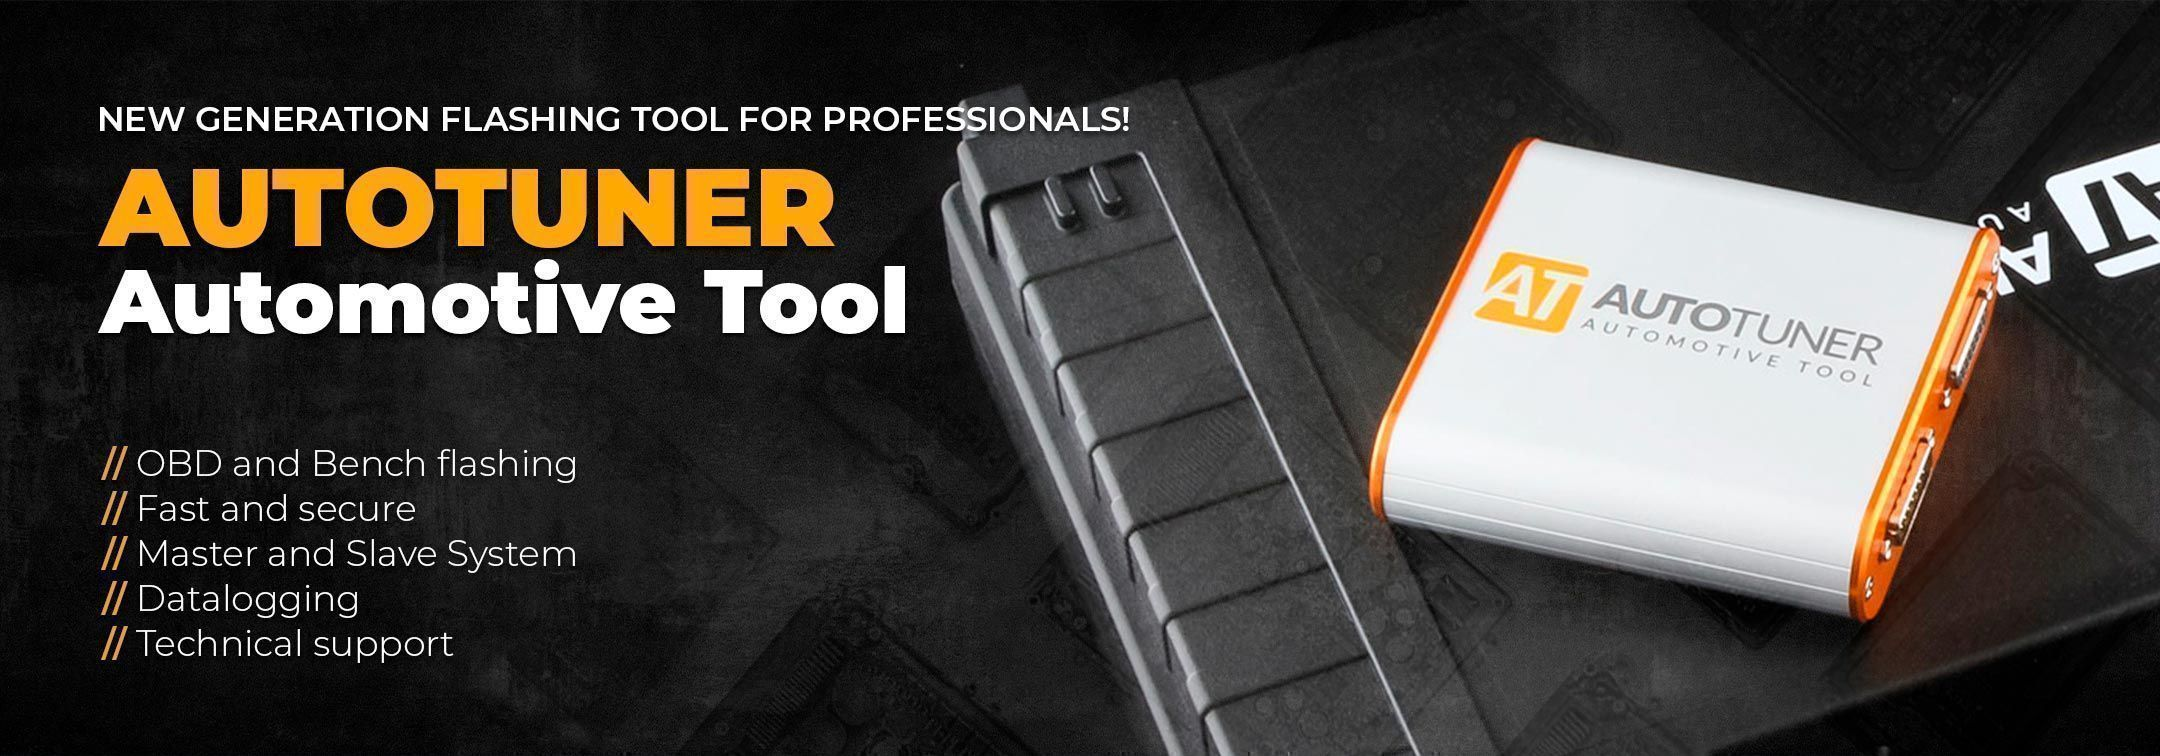 Autotuner automotive tool